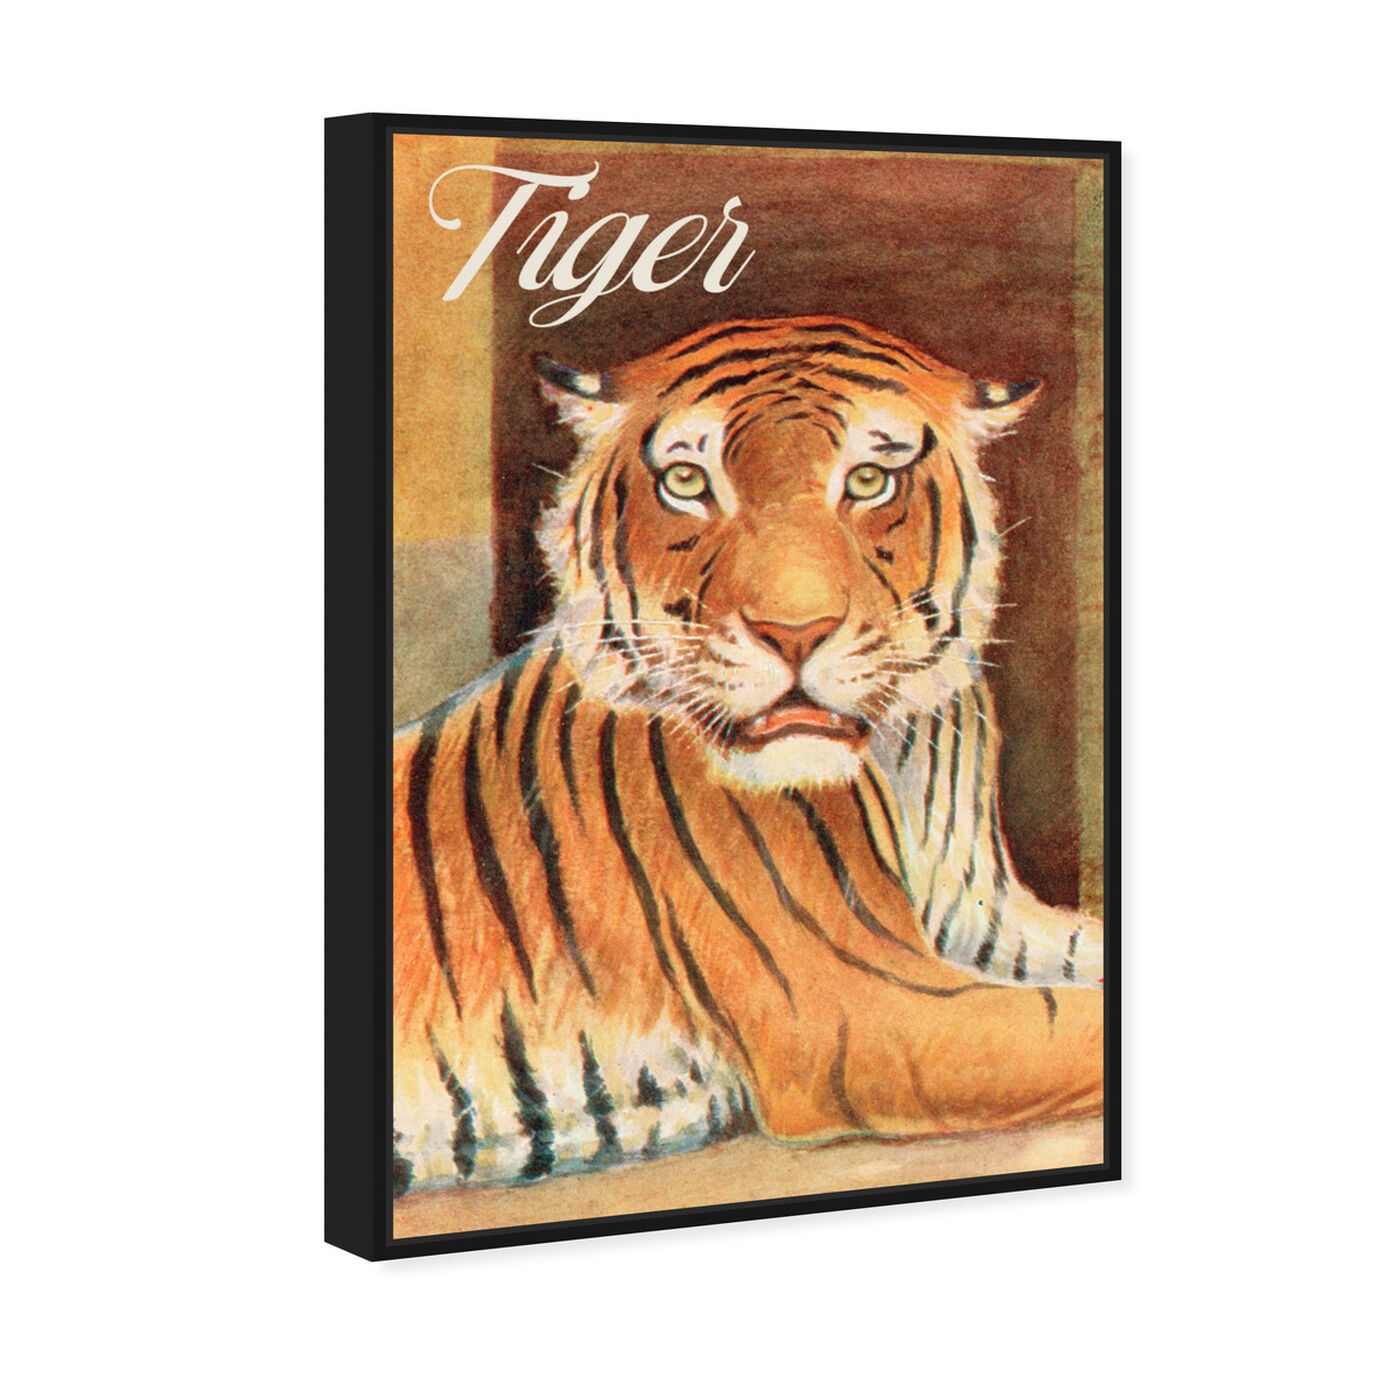 Angled view of Tiger featuring animals and felines art.